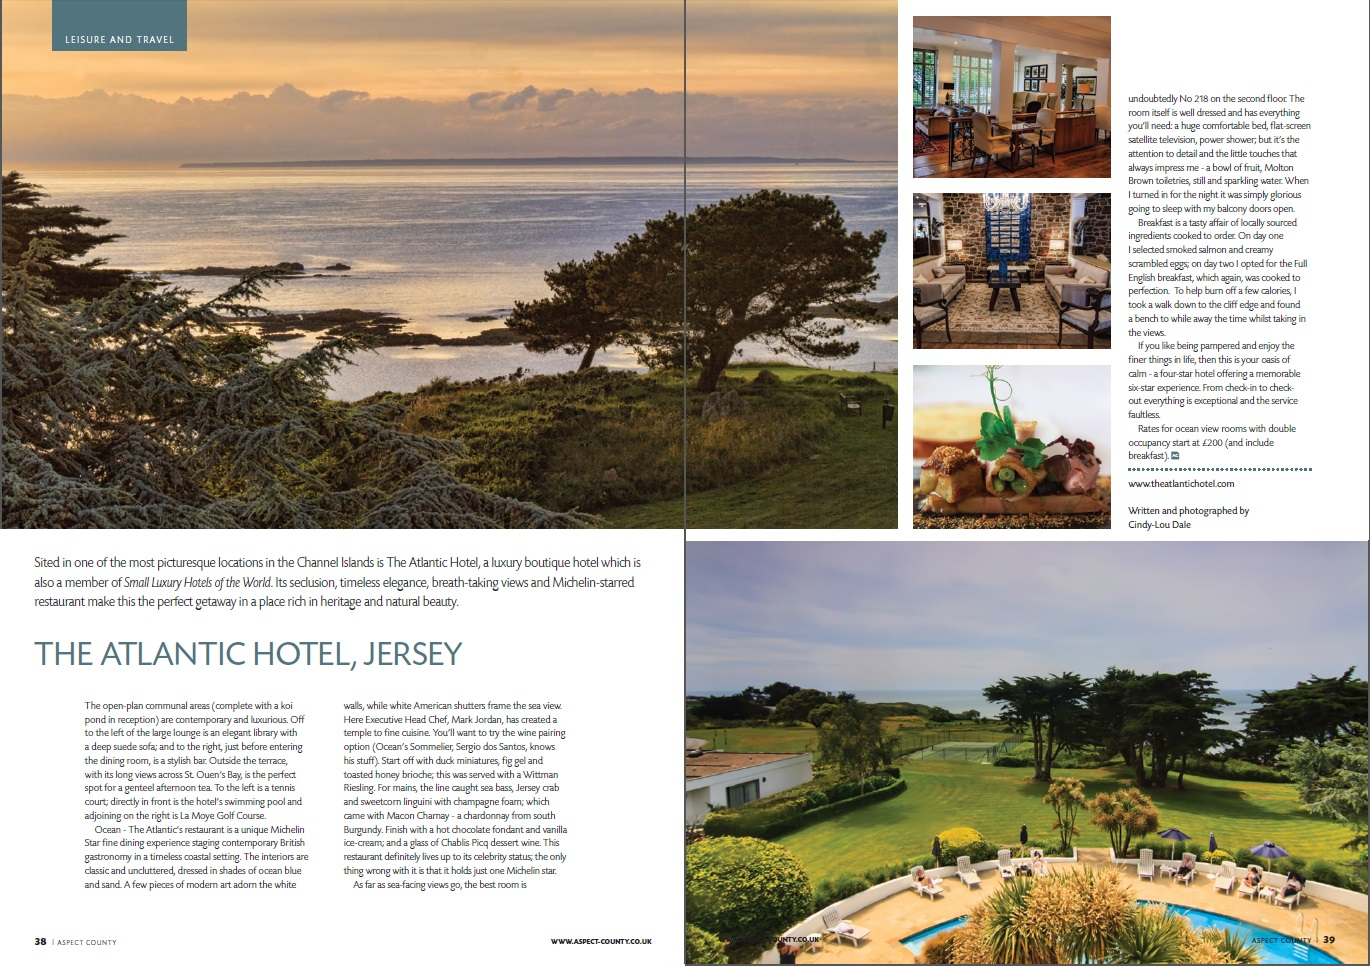 Aspect County, UK - Jersey Atlantic Hotel